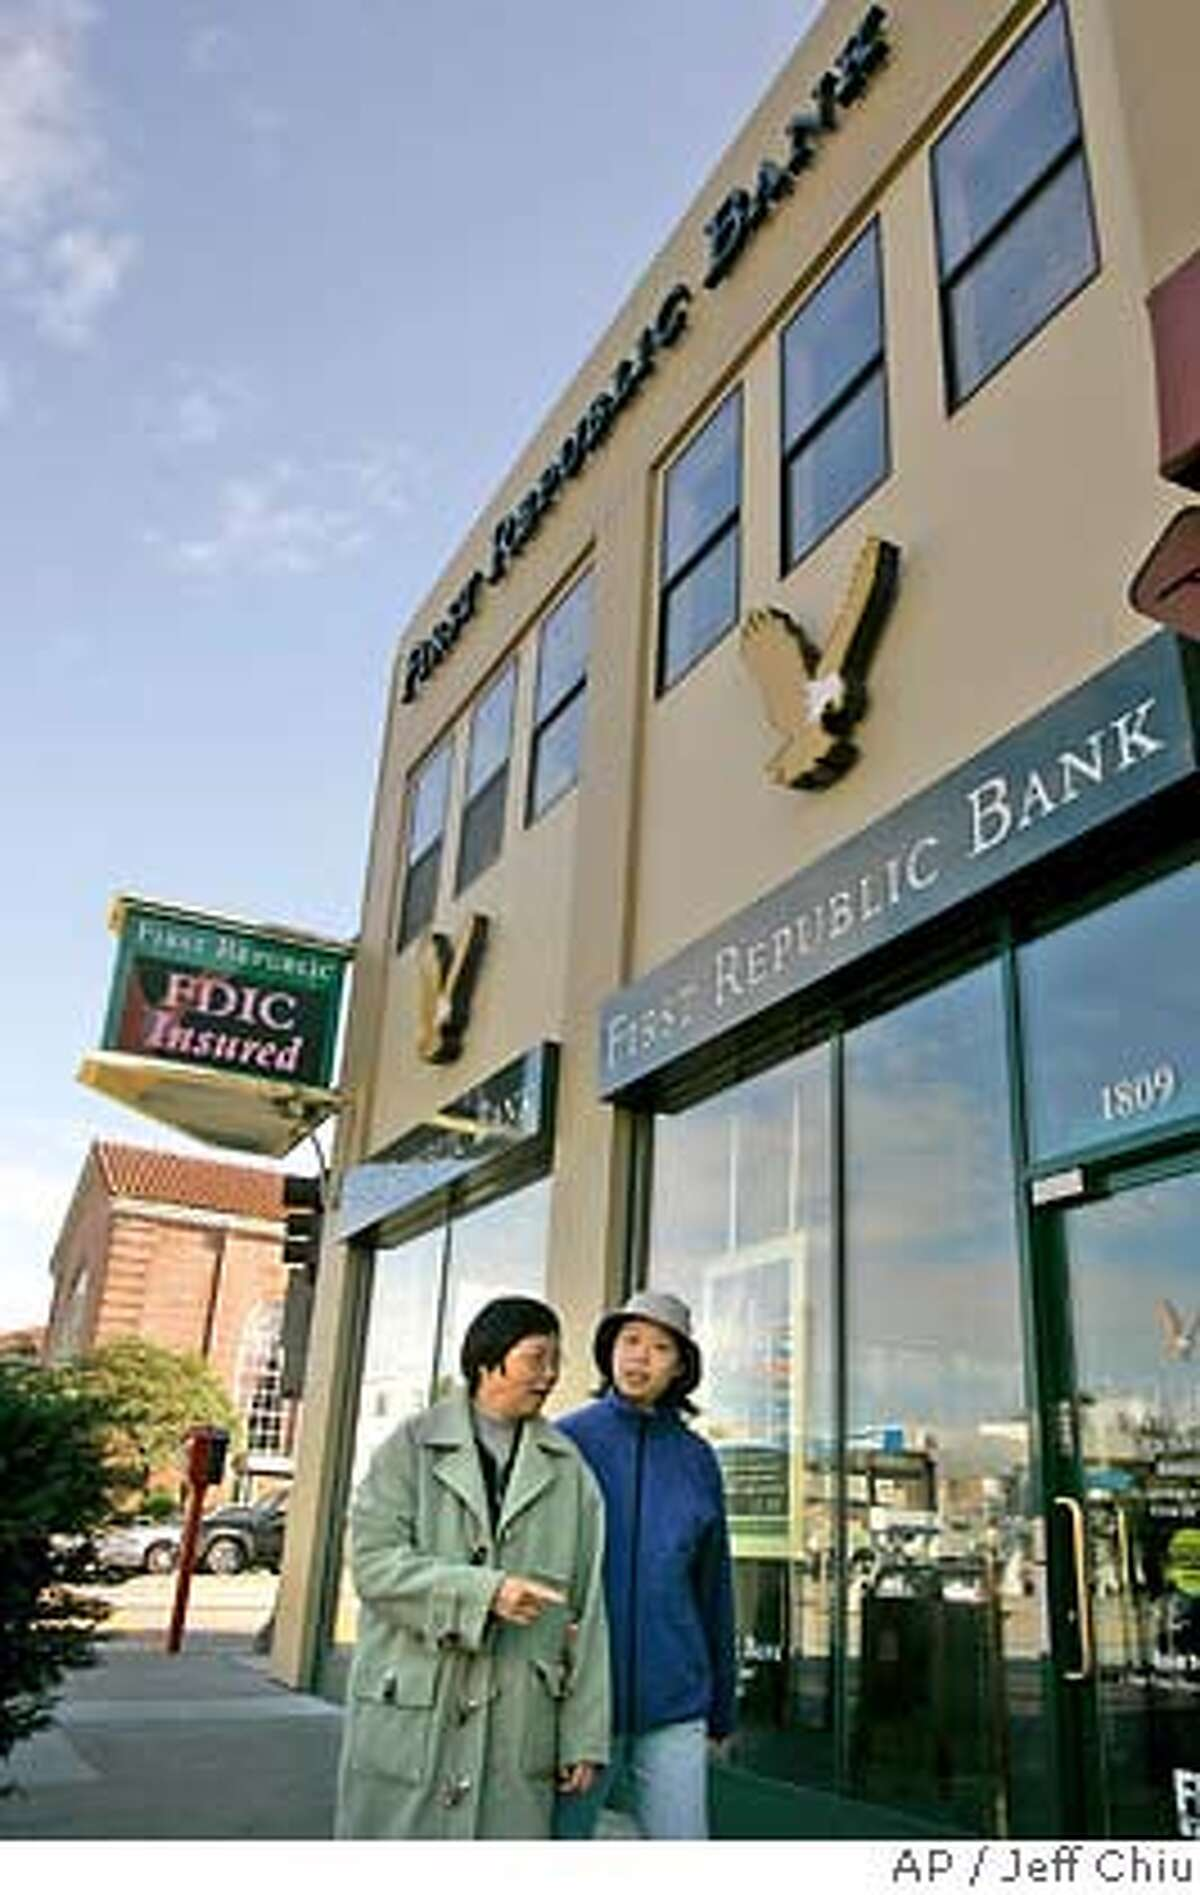 A First Republic Bank is photographed in San Francisco, Monday, Jan. 29, 2007. Merrill Lynch & Co., the biggest U.S. retail brokerage, said Monday it will buy San Francisco-based wealth manager First Republic Bank for $1.8 billion in cash and stock. (AP Photo/Jeff Chiu)